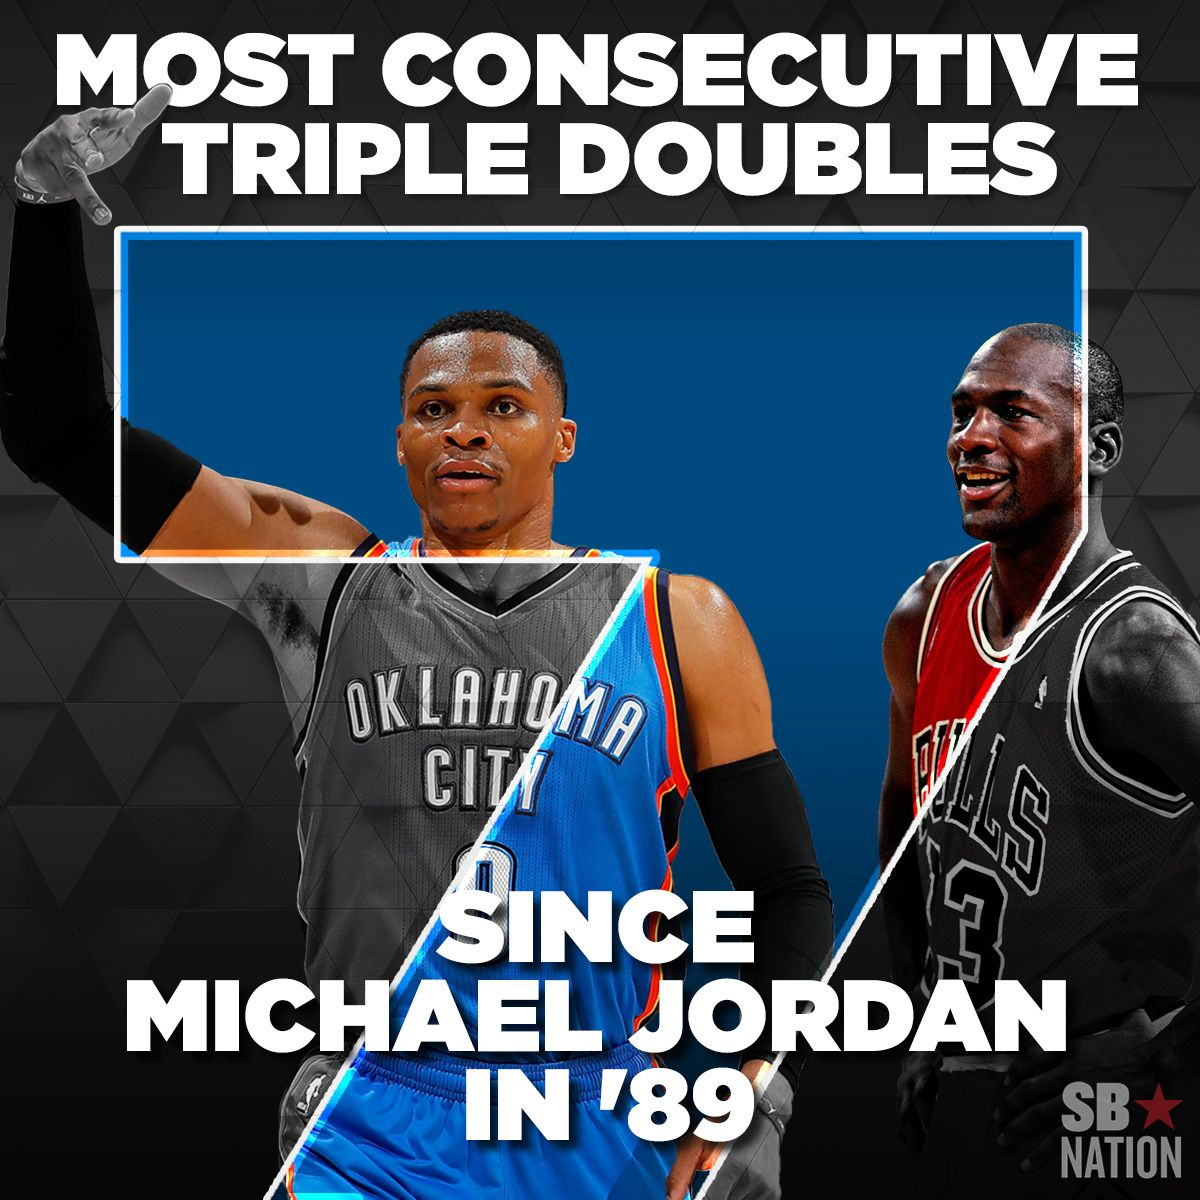 reputable site 3d6d0 cecb3 On Friday night, Russell Westbrook tied Jordan s seven consecutive triple- doubles with a rebound in the fourth quarter. He started quickly, recording  six ...